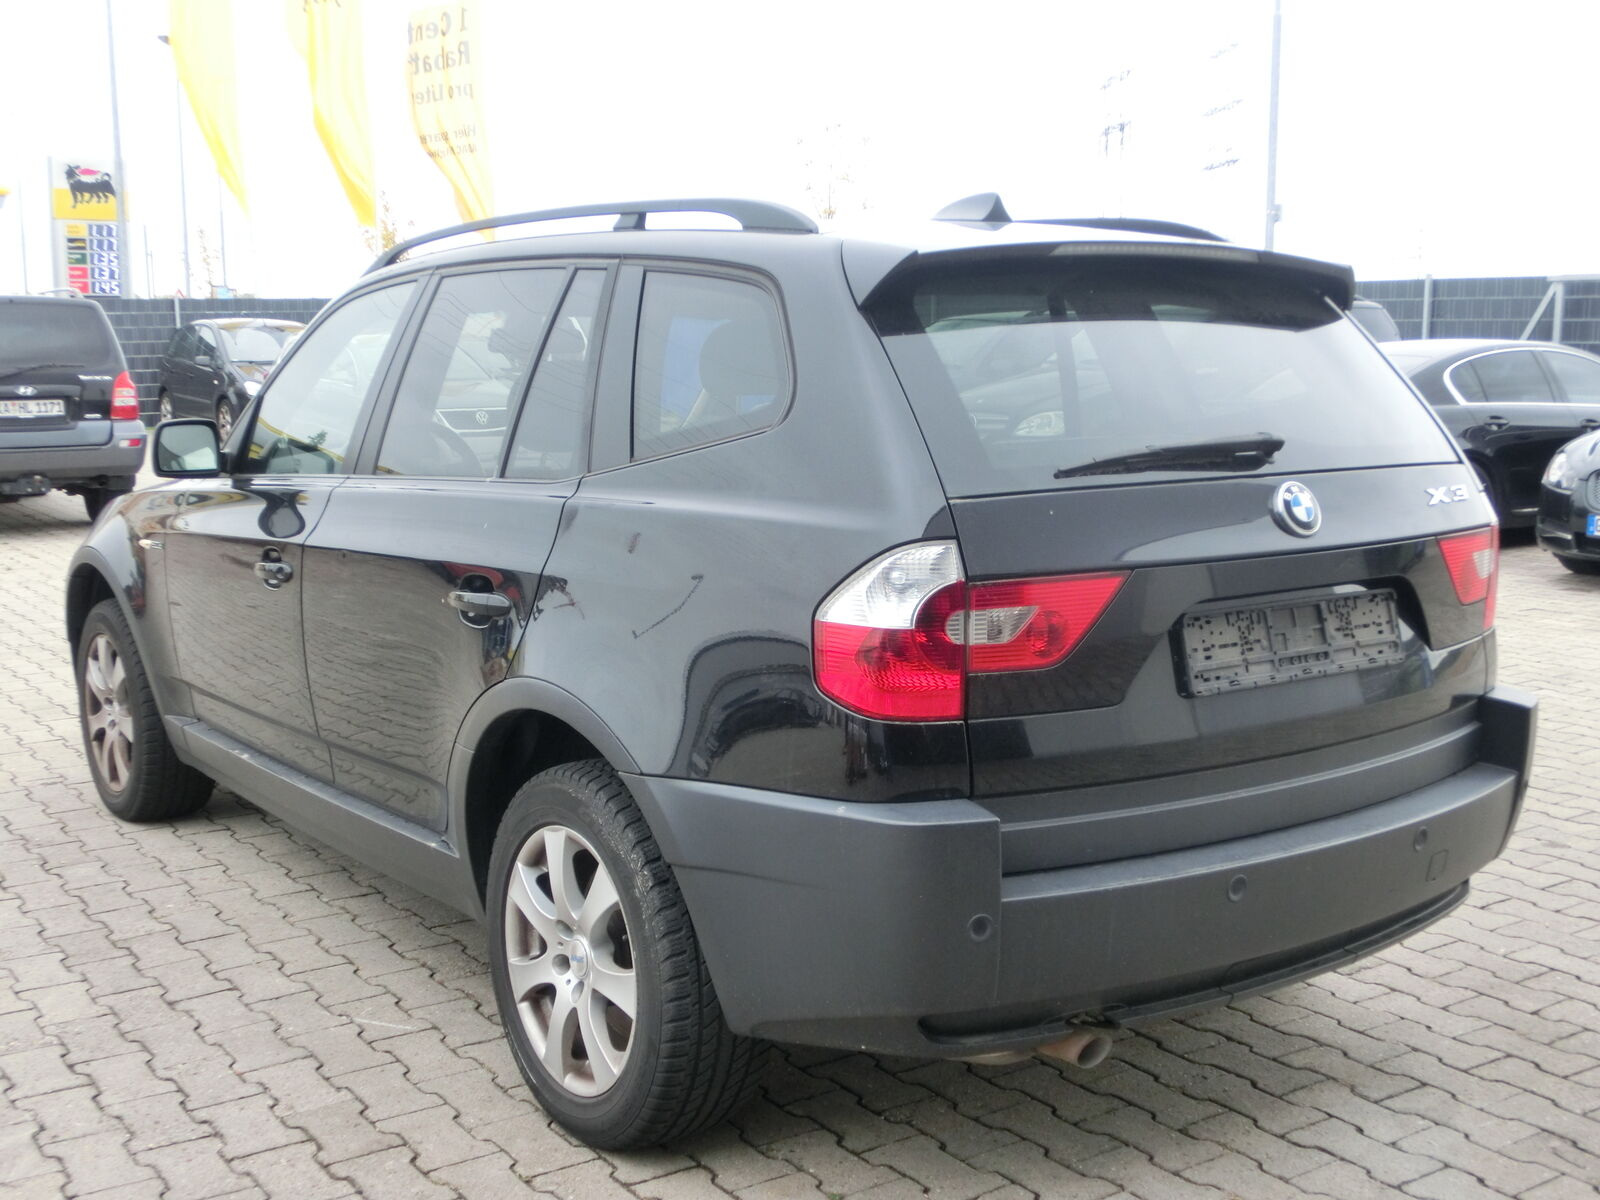 Cable Loom Door and Window Regular Left Front for BMW X3 E83 04 06